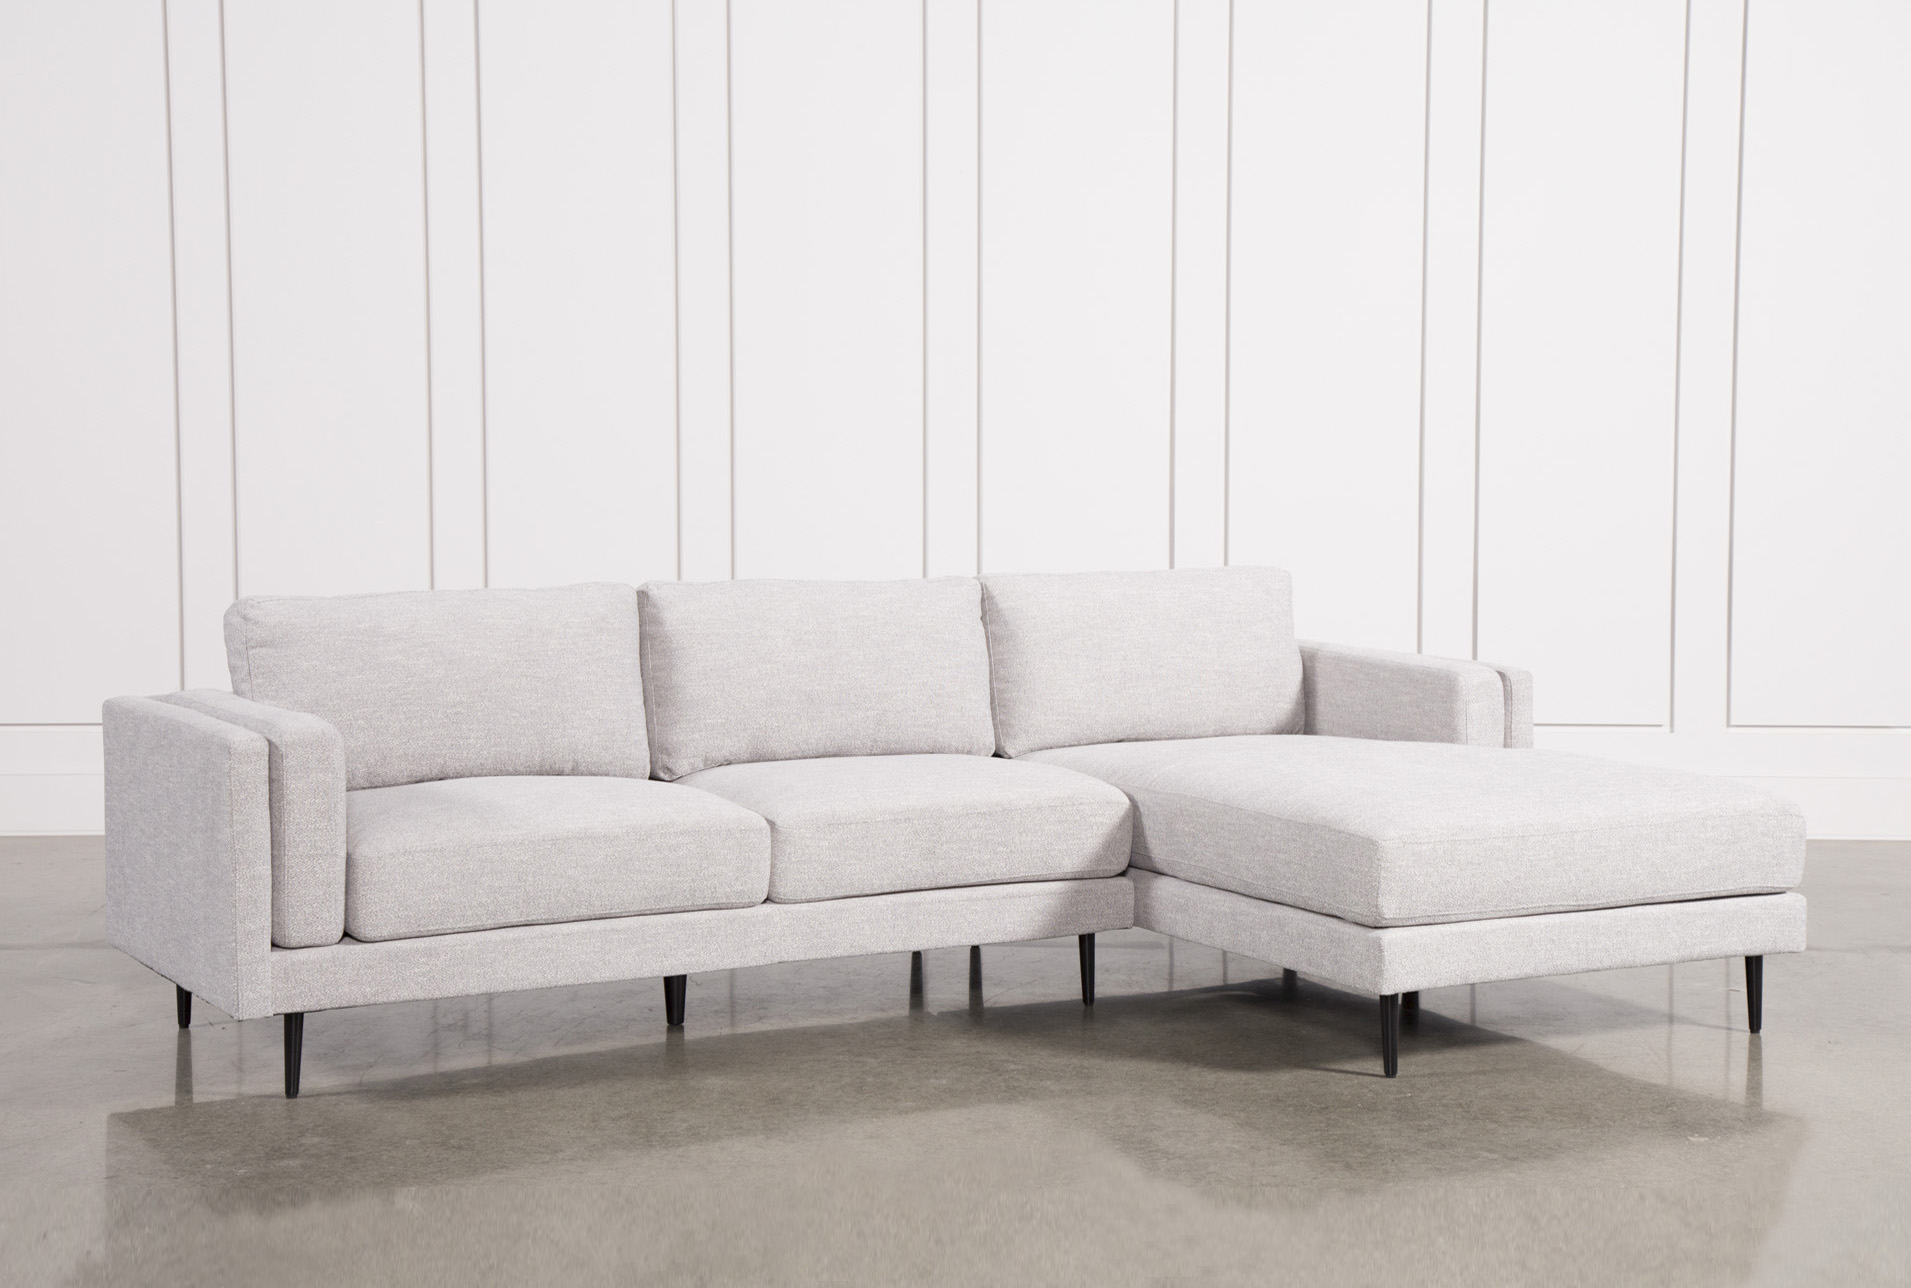 Genial Aquarius Light Grey 2 Piece Sectional W/Raf Chaise (Qty: 1) Has Been  Successfully Added To Your Cart.